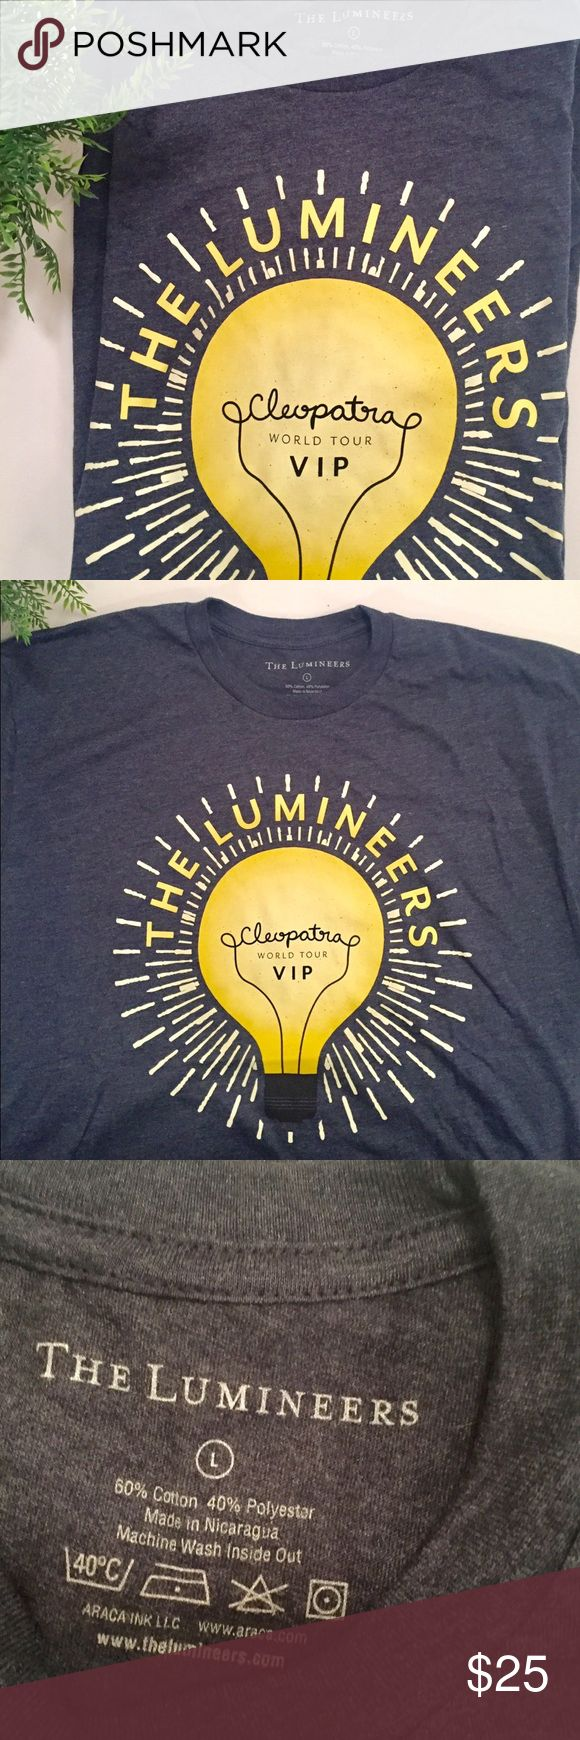 🆕 The Lumineers Tour Shirt. 🆕 The Lumineers world tour T-shirt. Brand new never worn!!! I purchased a VIP package when I saw them and this was part of the package. You can only get this shirt by purchasing the package with was over $200. This is a unisex large and has some stretch. Tops Tees - Short Sleeve